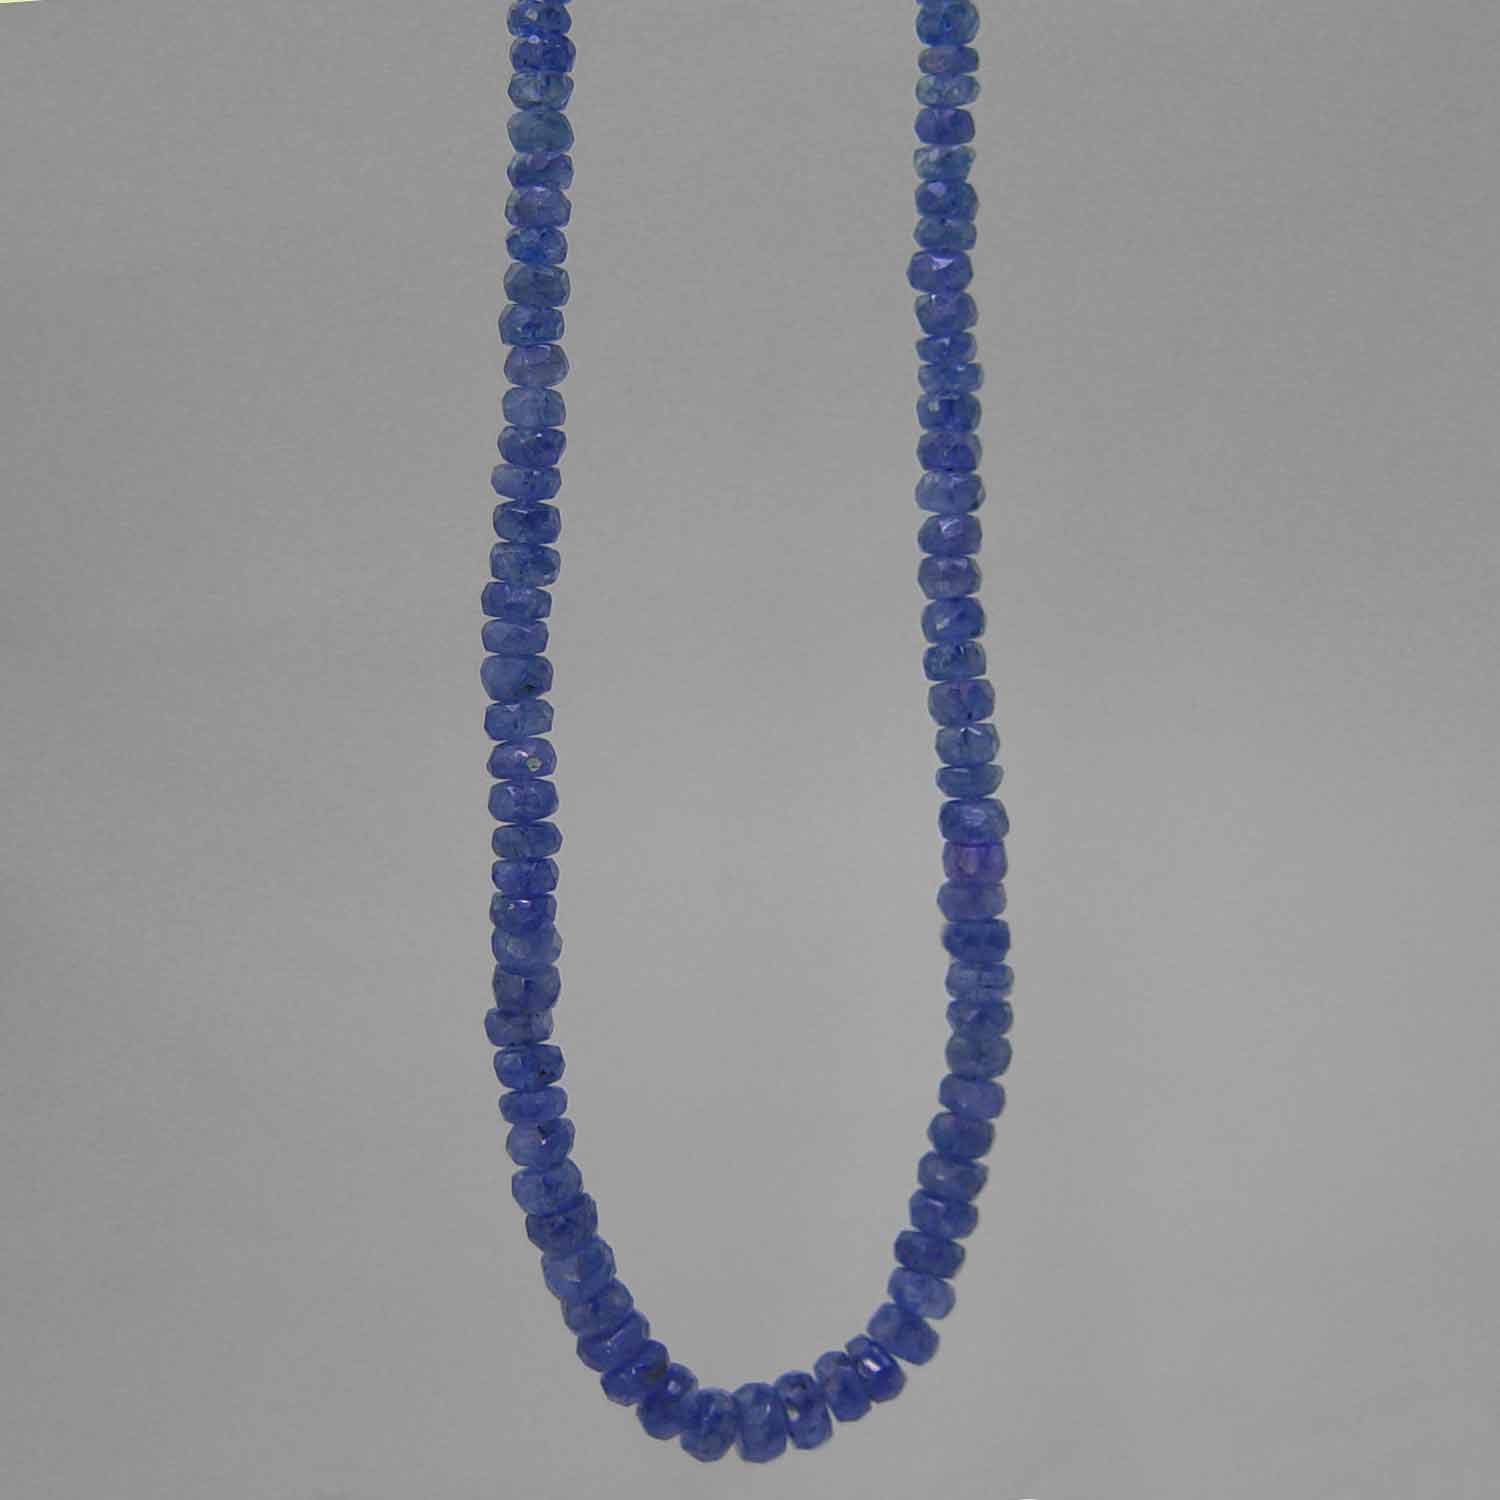 "Blue Sapphire Faceted Rondelle Graduated 17"" Necklace - 80 ct"